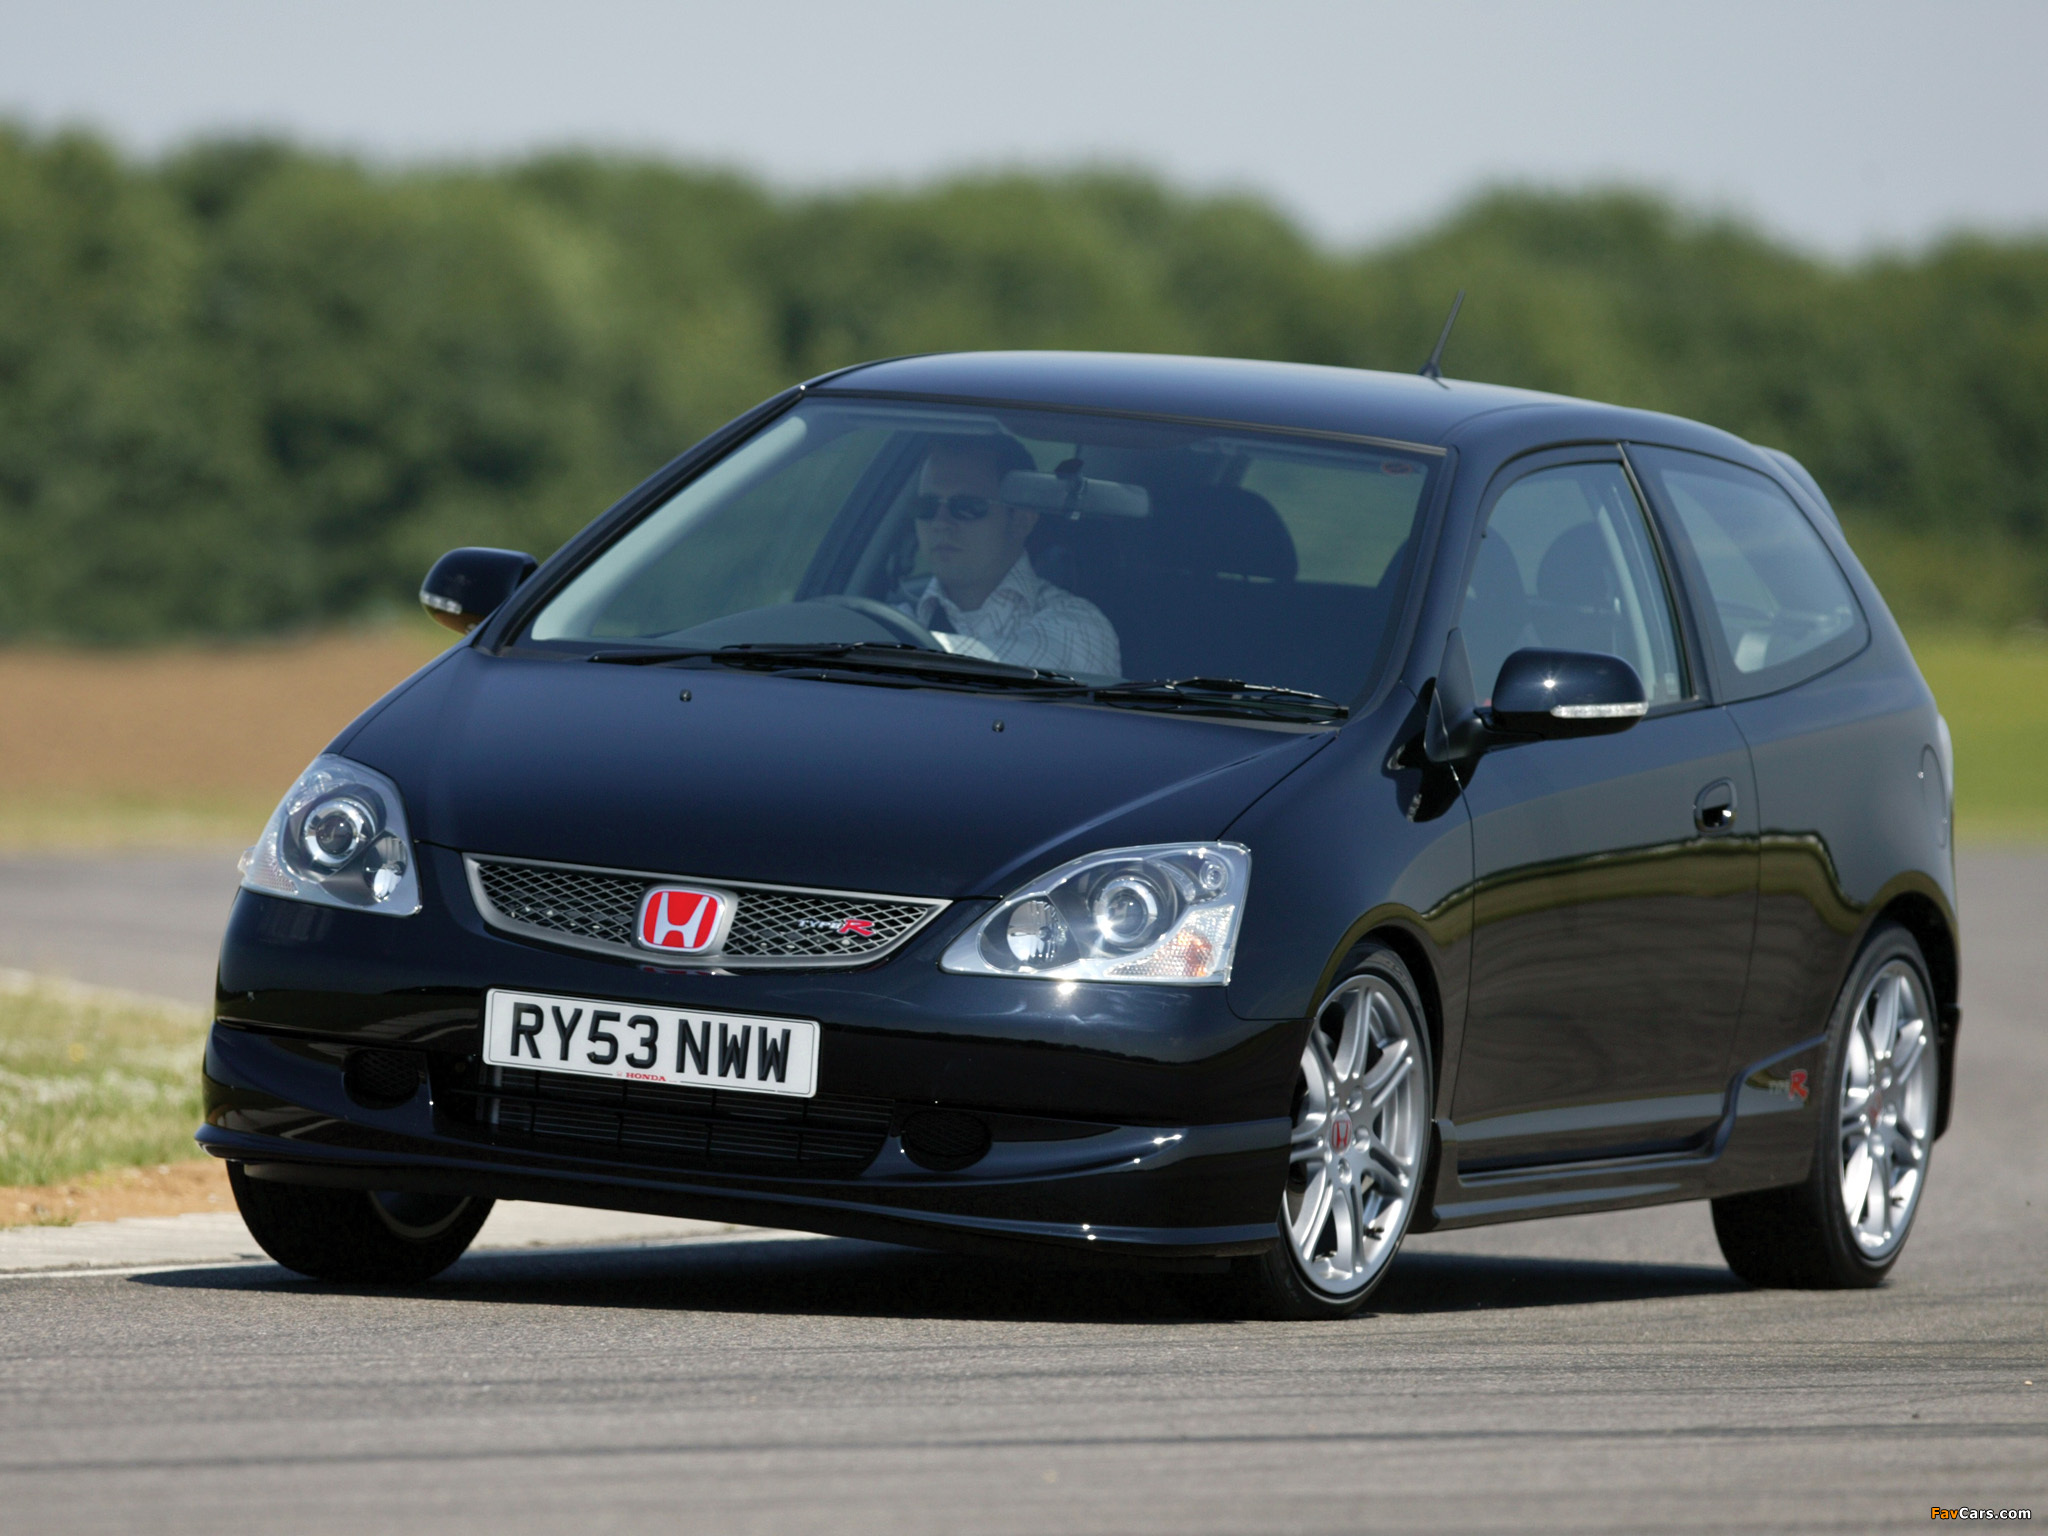 honda civic type r uk spec ep3 2003 05 wallpapers. Black Bedroom Furniture Sets. Home Design Ideas